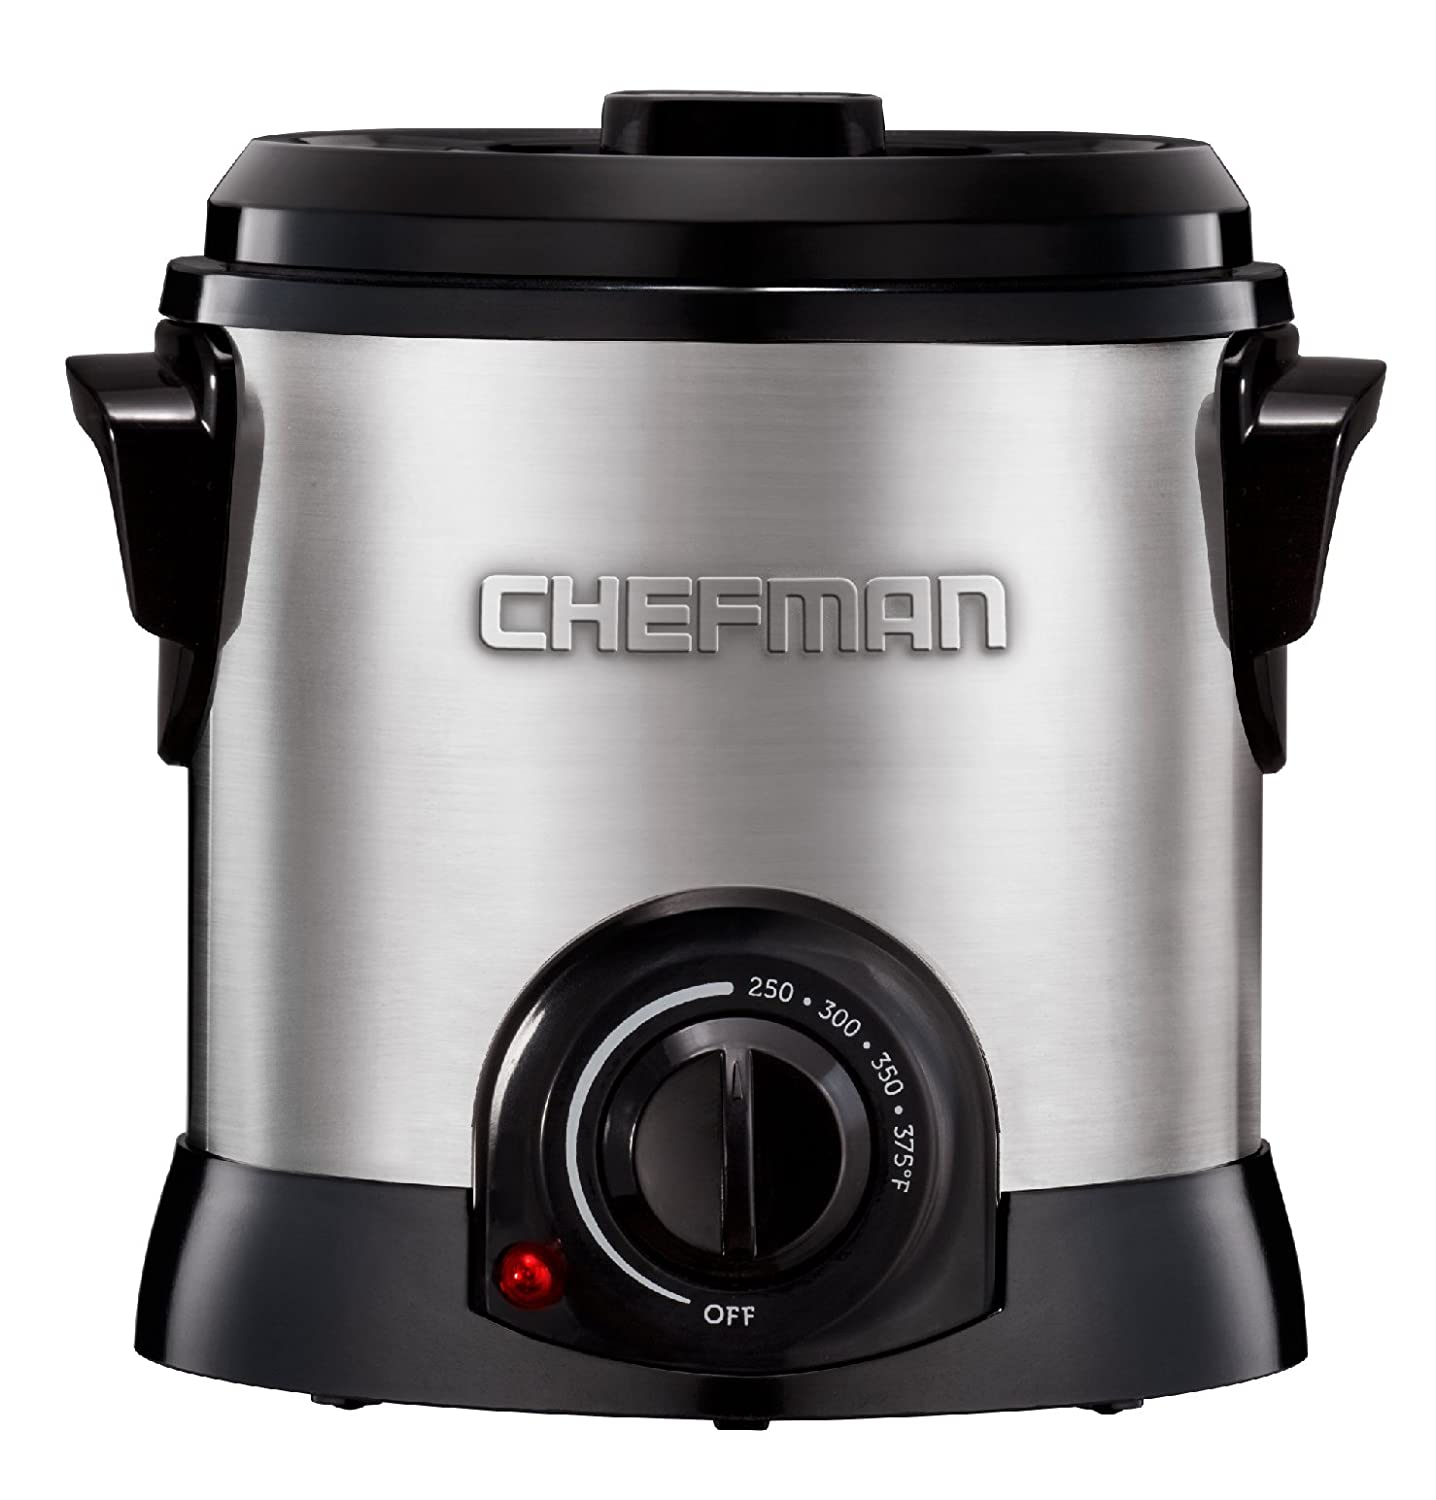 Chefman RJ07-M-SS Deep Fryer Fry Guy, 4.2 Cup Capacity, Stainless Steel Silver